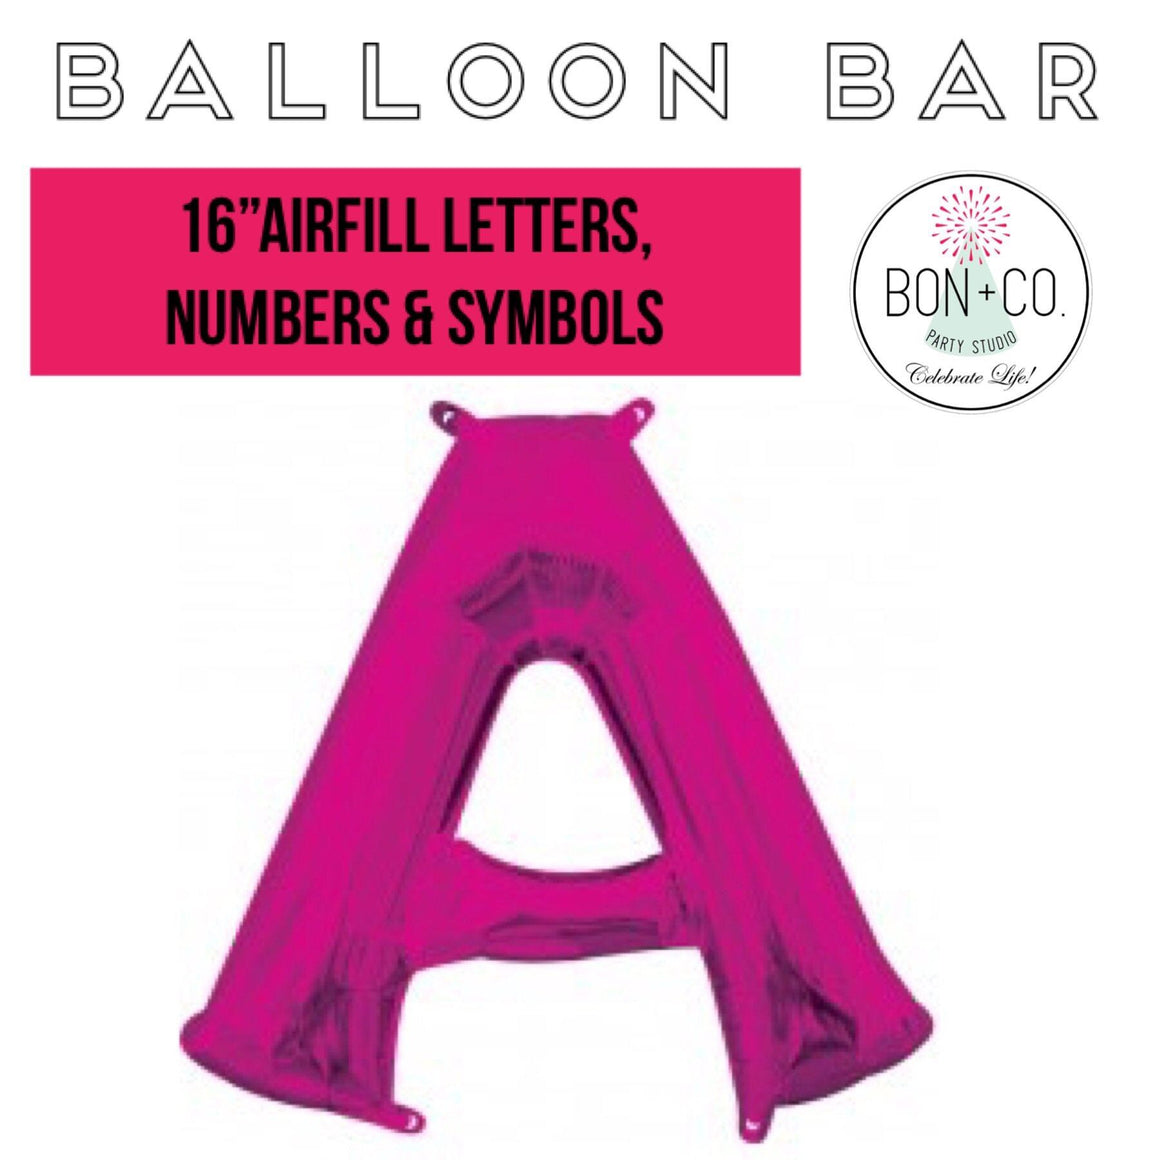 "BALLOON BAR - 16"" AIRFILL PINK, Balloons, BETALLIC - Bon + Co. Party Studio"